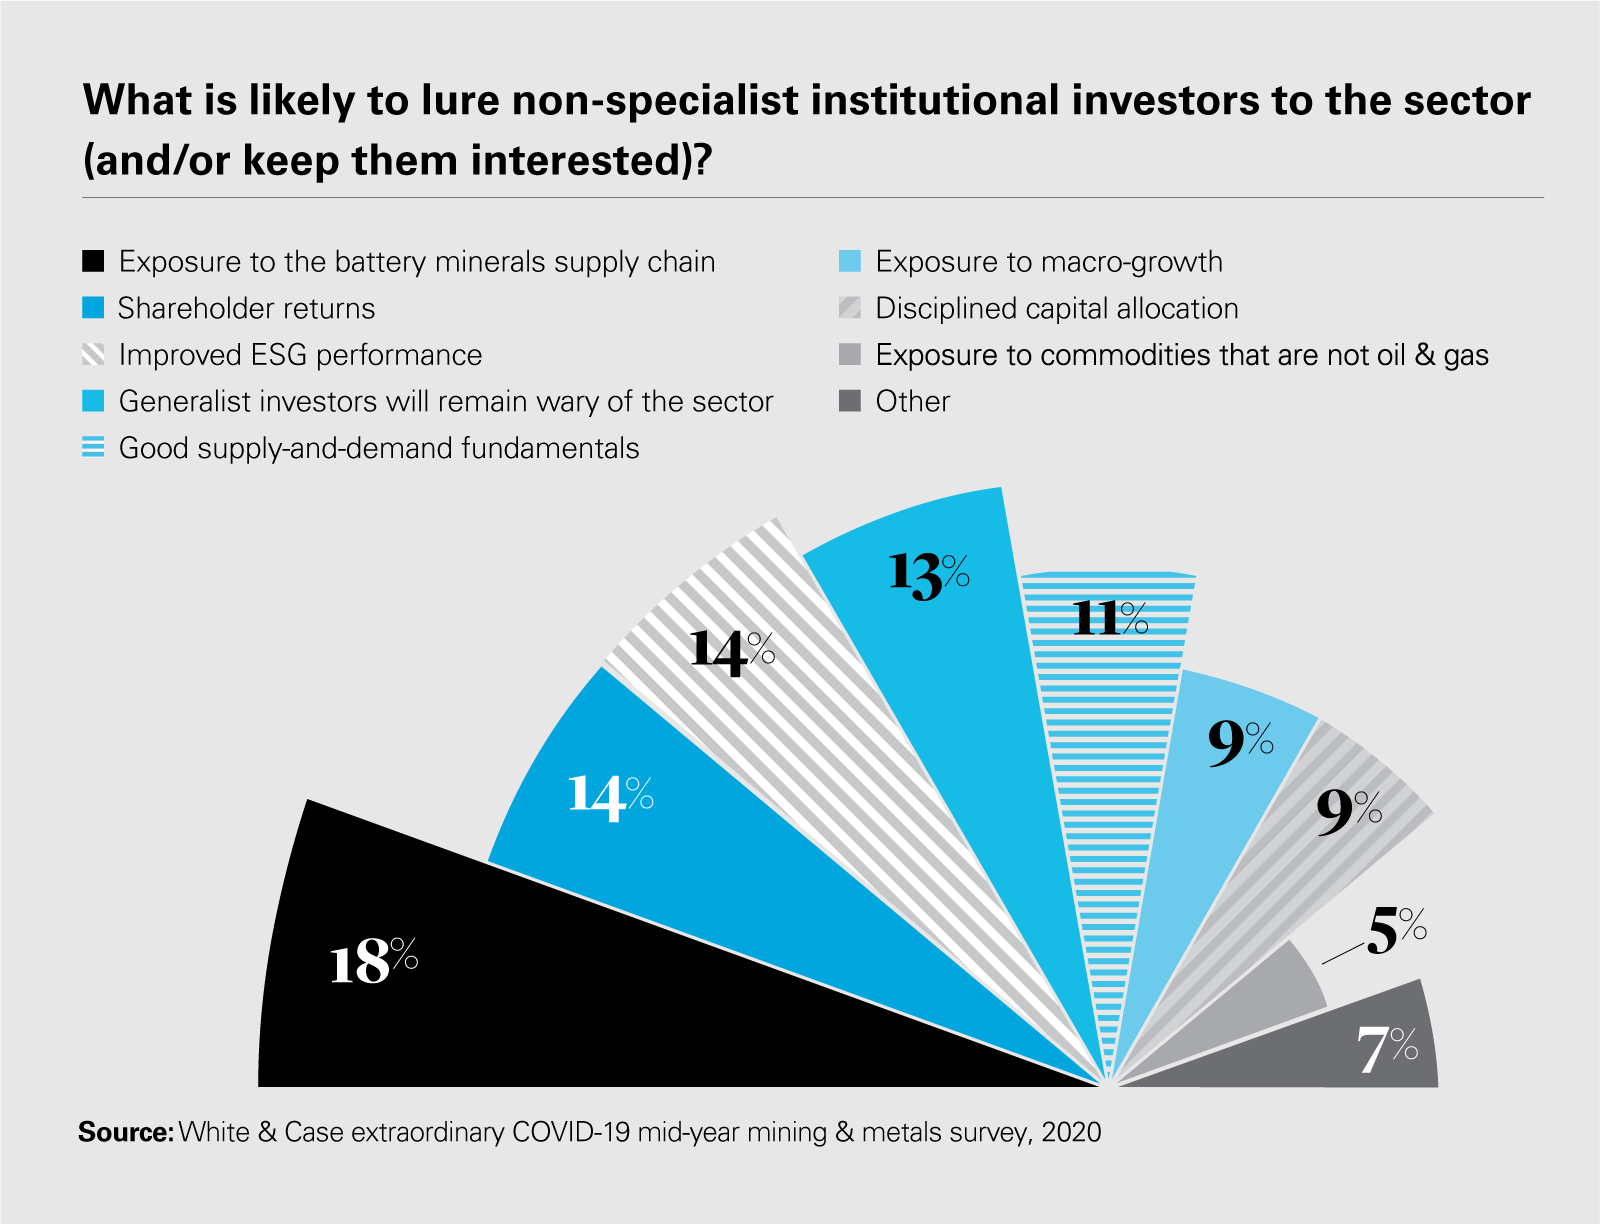 What is likely to lure non-specialist institutional investors to the sector (and/or keep them interested)?